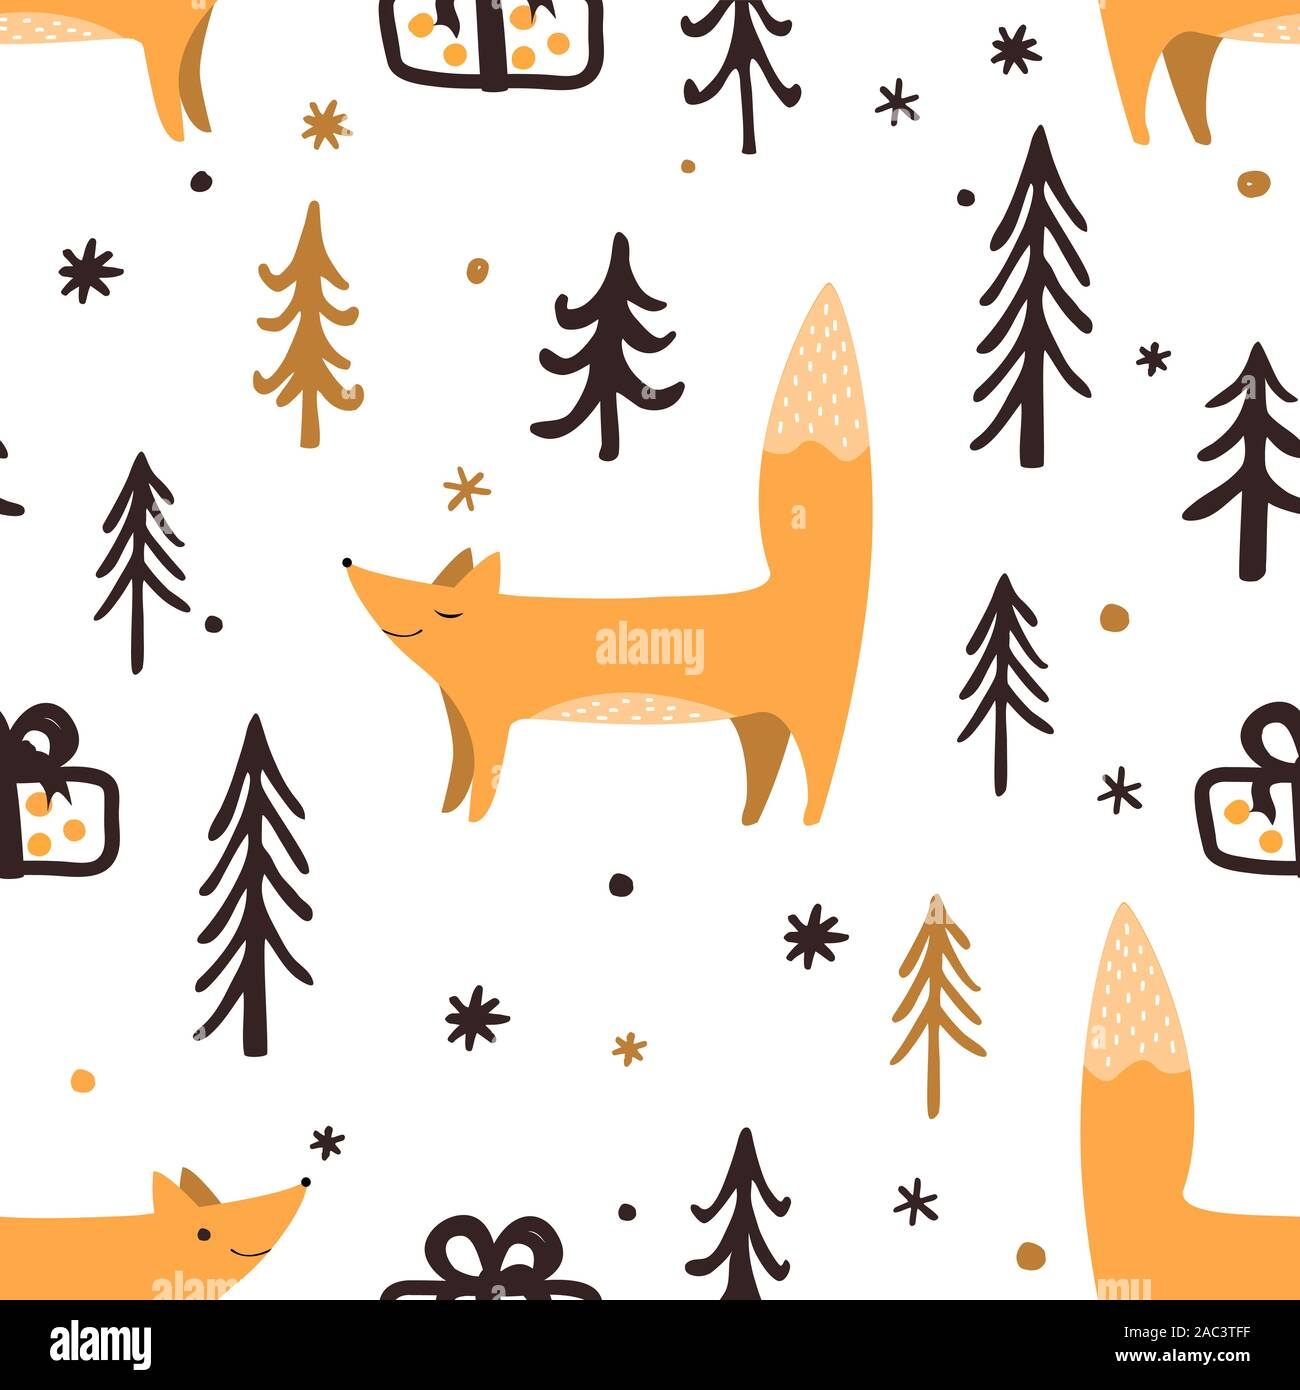 Seamless Christmas pattern with forest trees, present box, and happy foxes. Happy New Year background. Xmas Vector design for winter holidays. Stock Vector